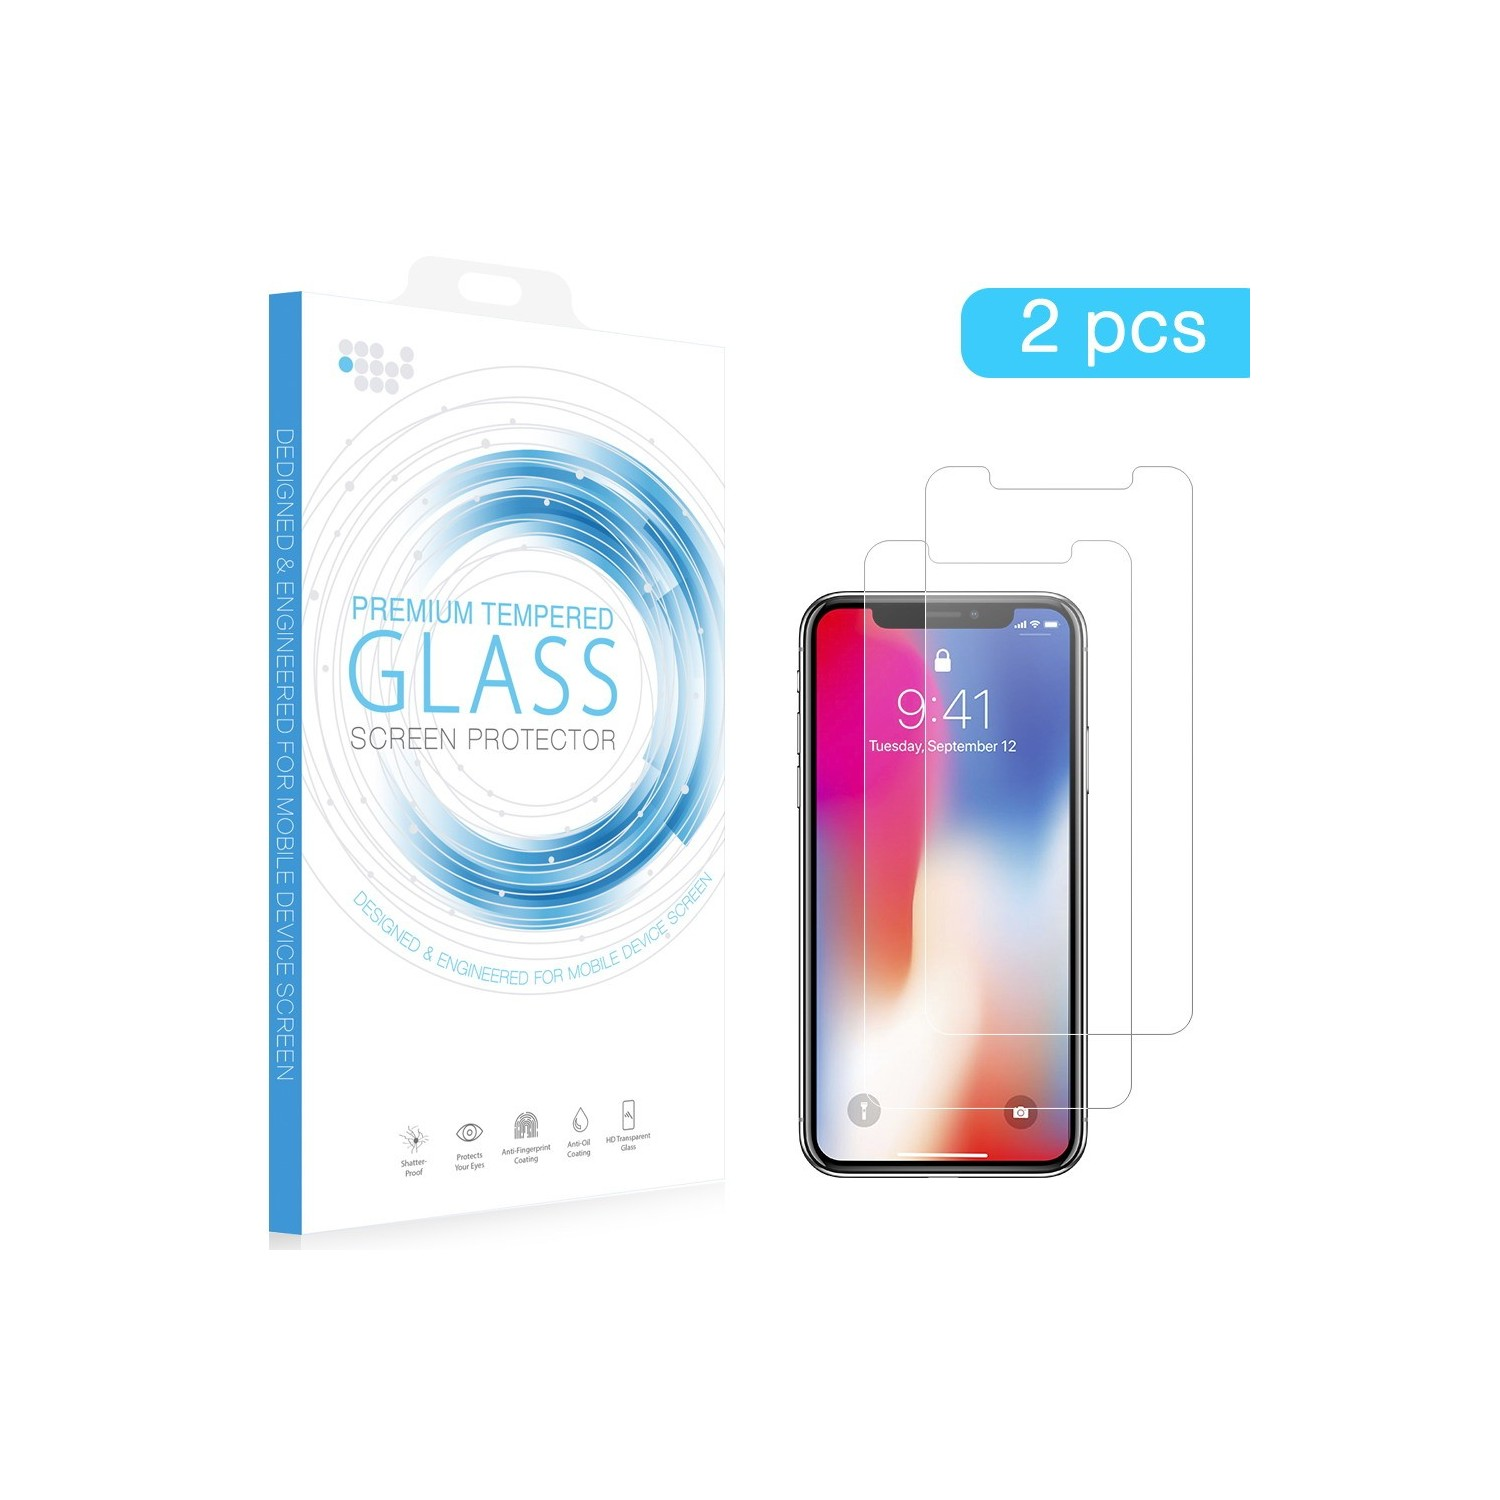 Screen Protector - DW Tempered Glass for iPhone 12 & 12 PRO (2 pc pack)